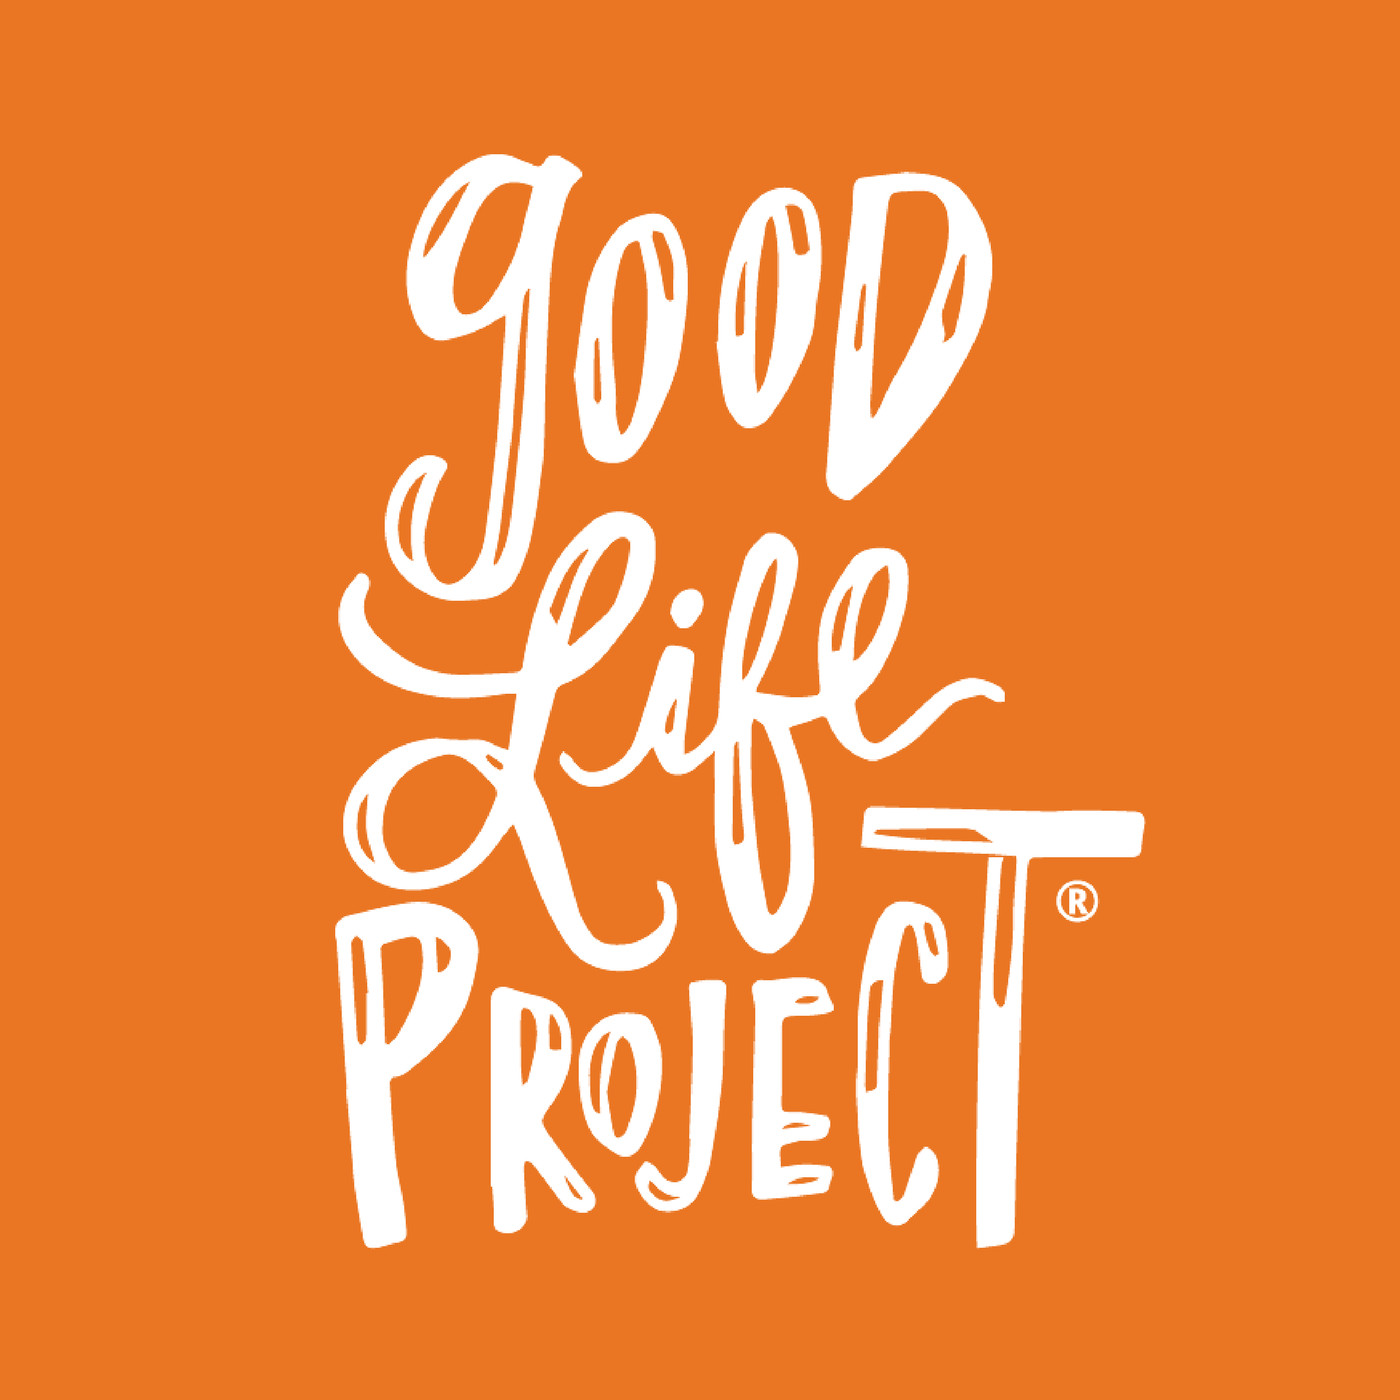 Good Life Project by Wondery on Apple Podcasts 54275f8c0